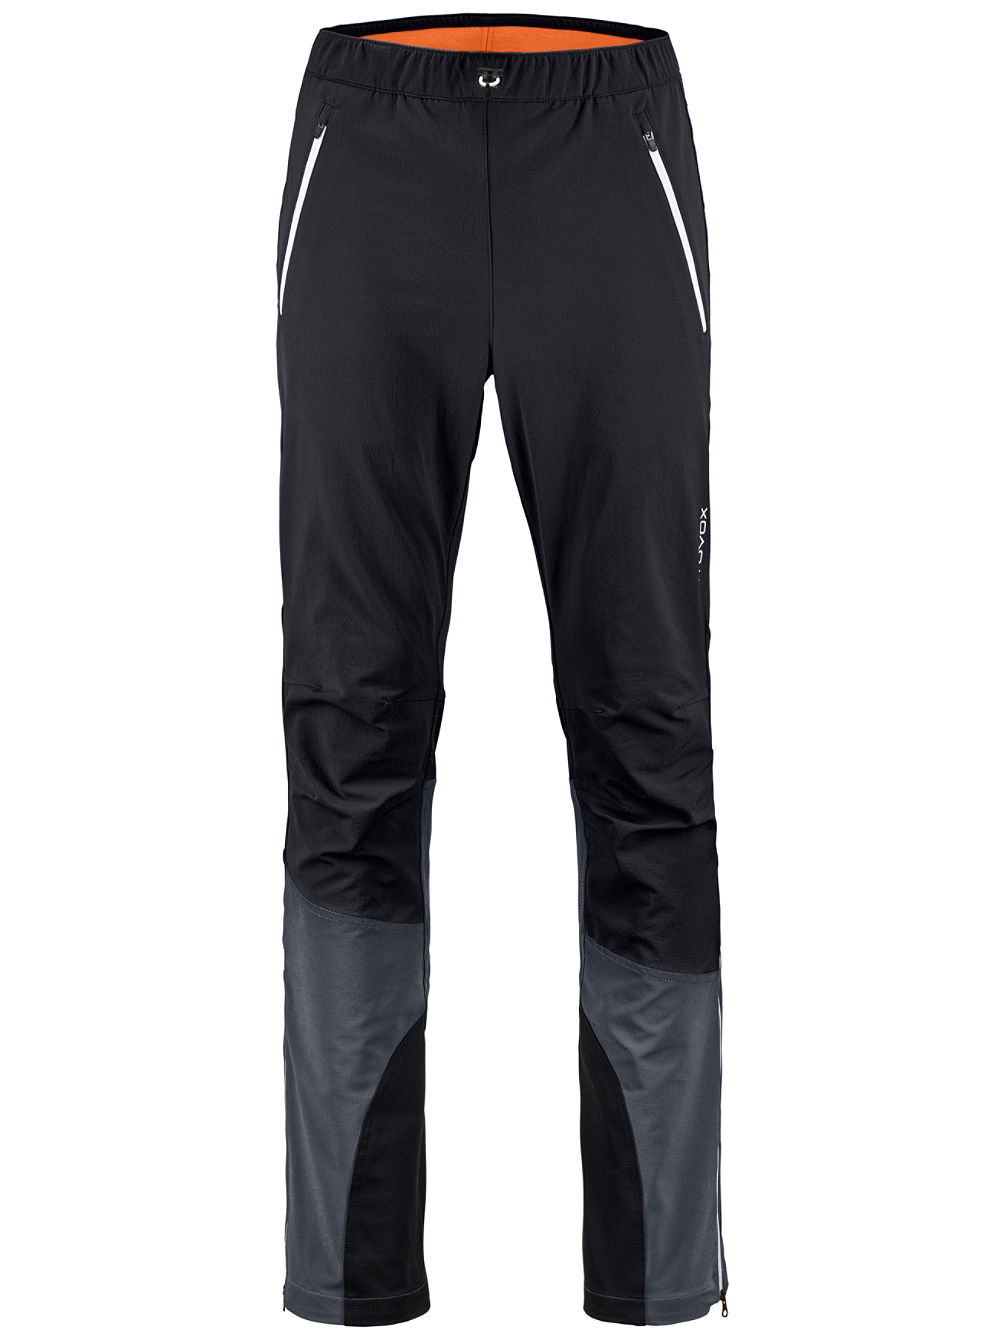 Tofana Outdoor Pants